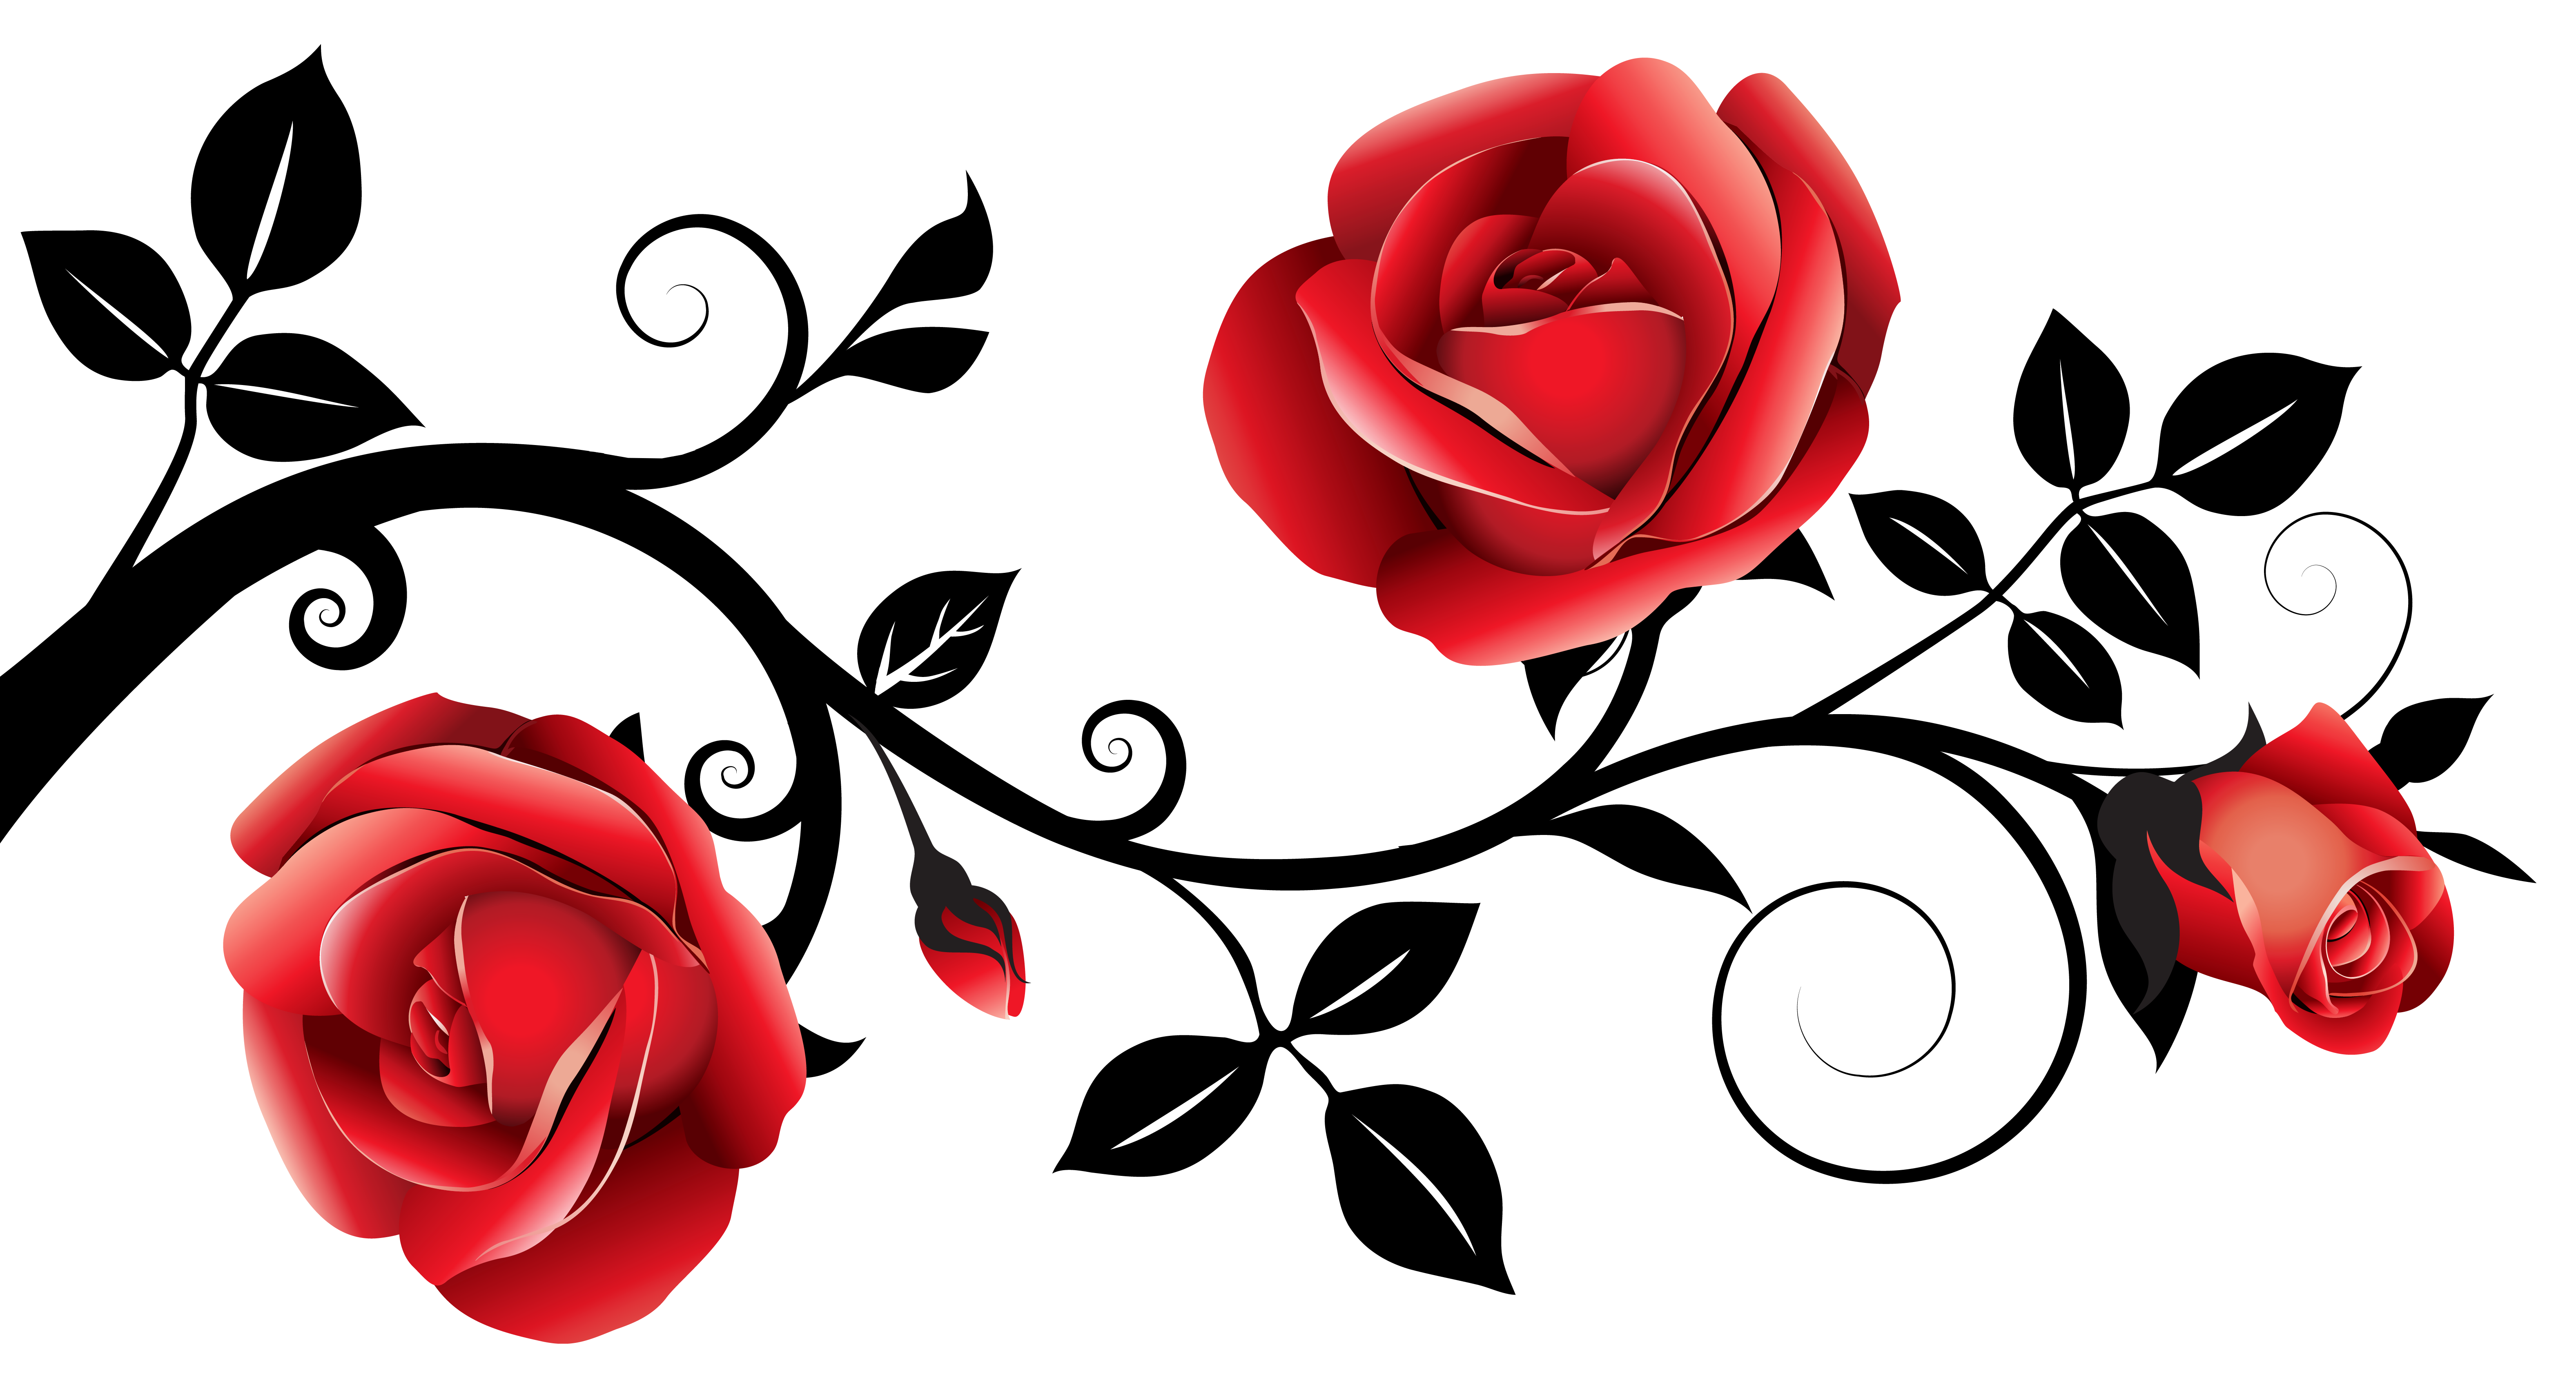 Rose Clipart No Background | Free download on ClipArtMag